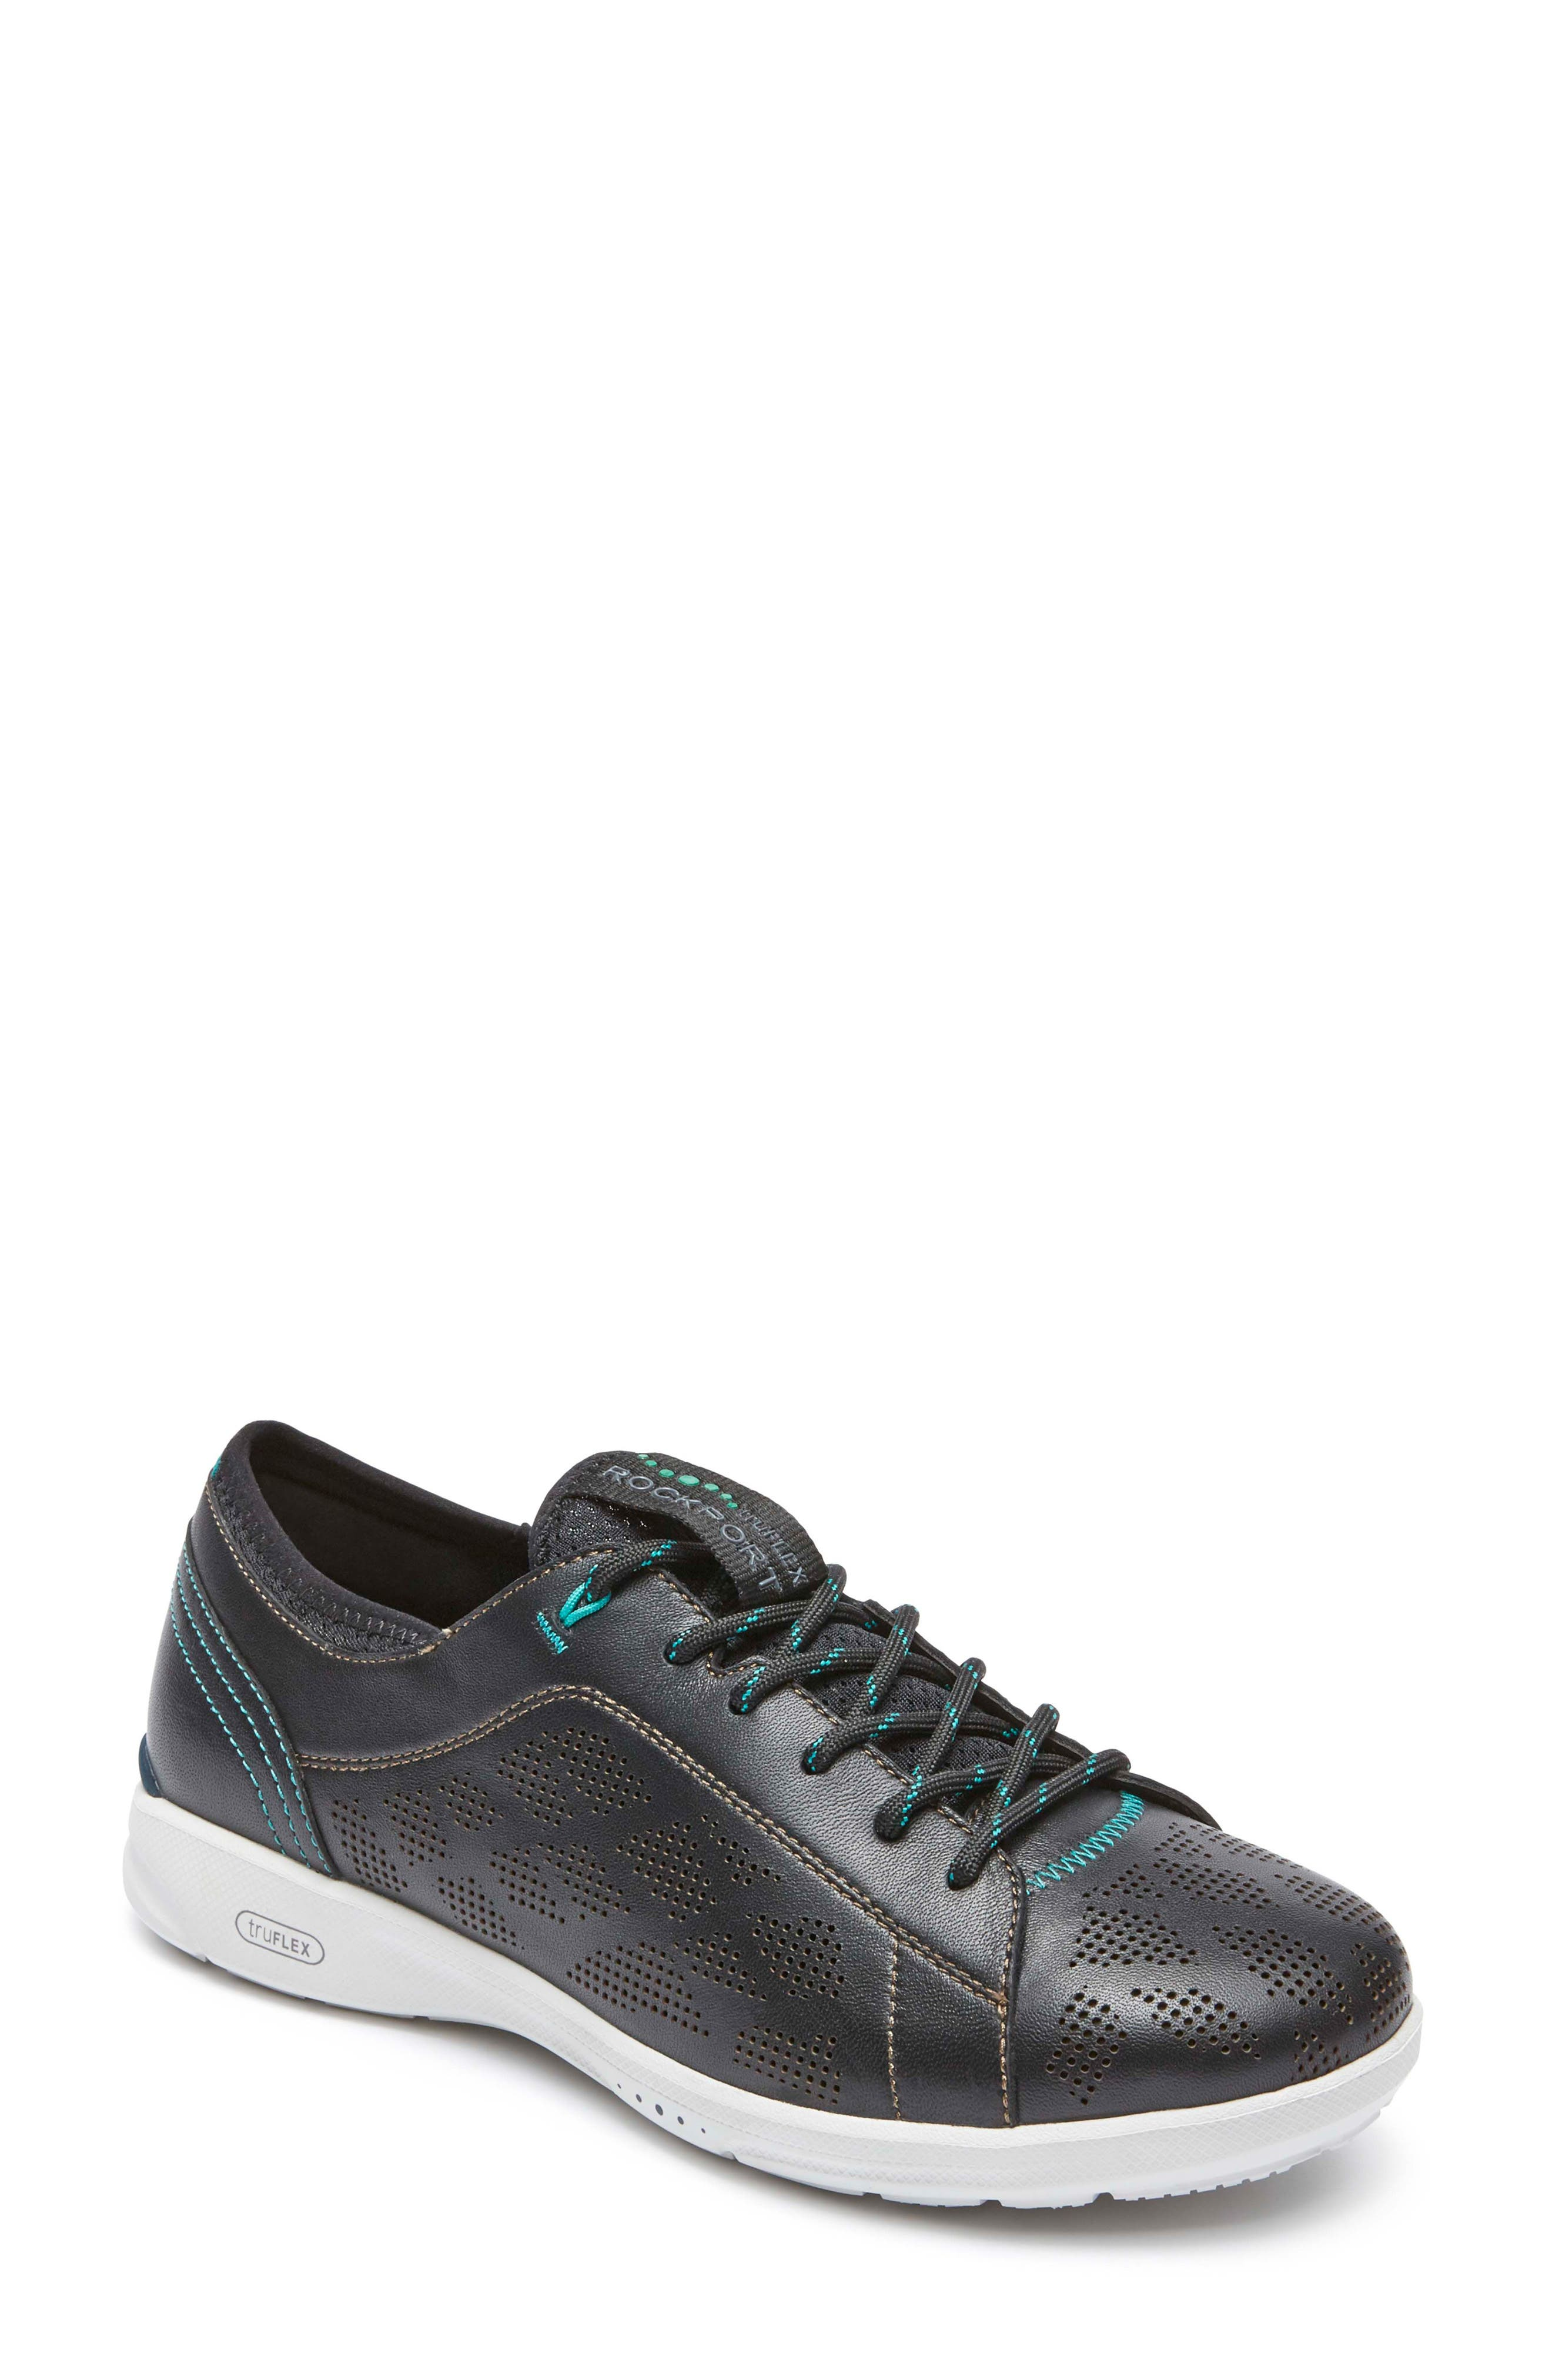 truFLEX Perforated Sneaker,                         Main,                         color, BLACK LEATHER